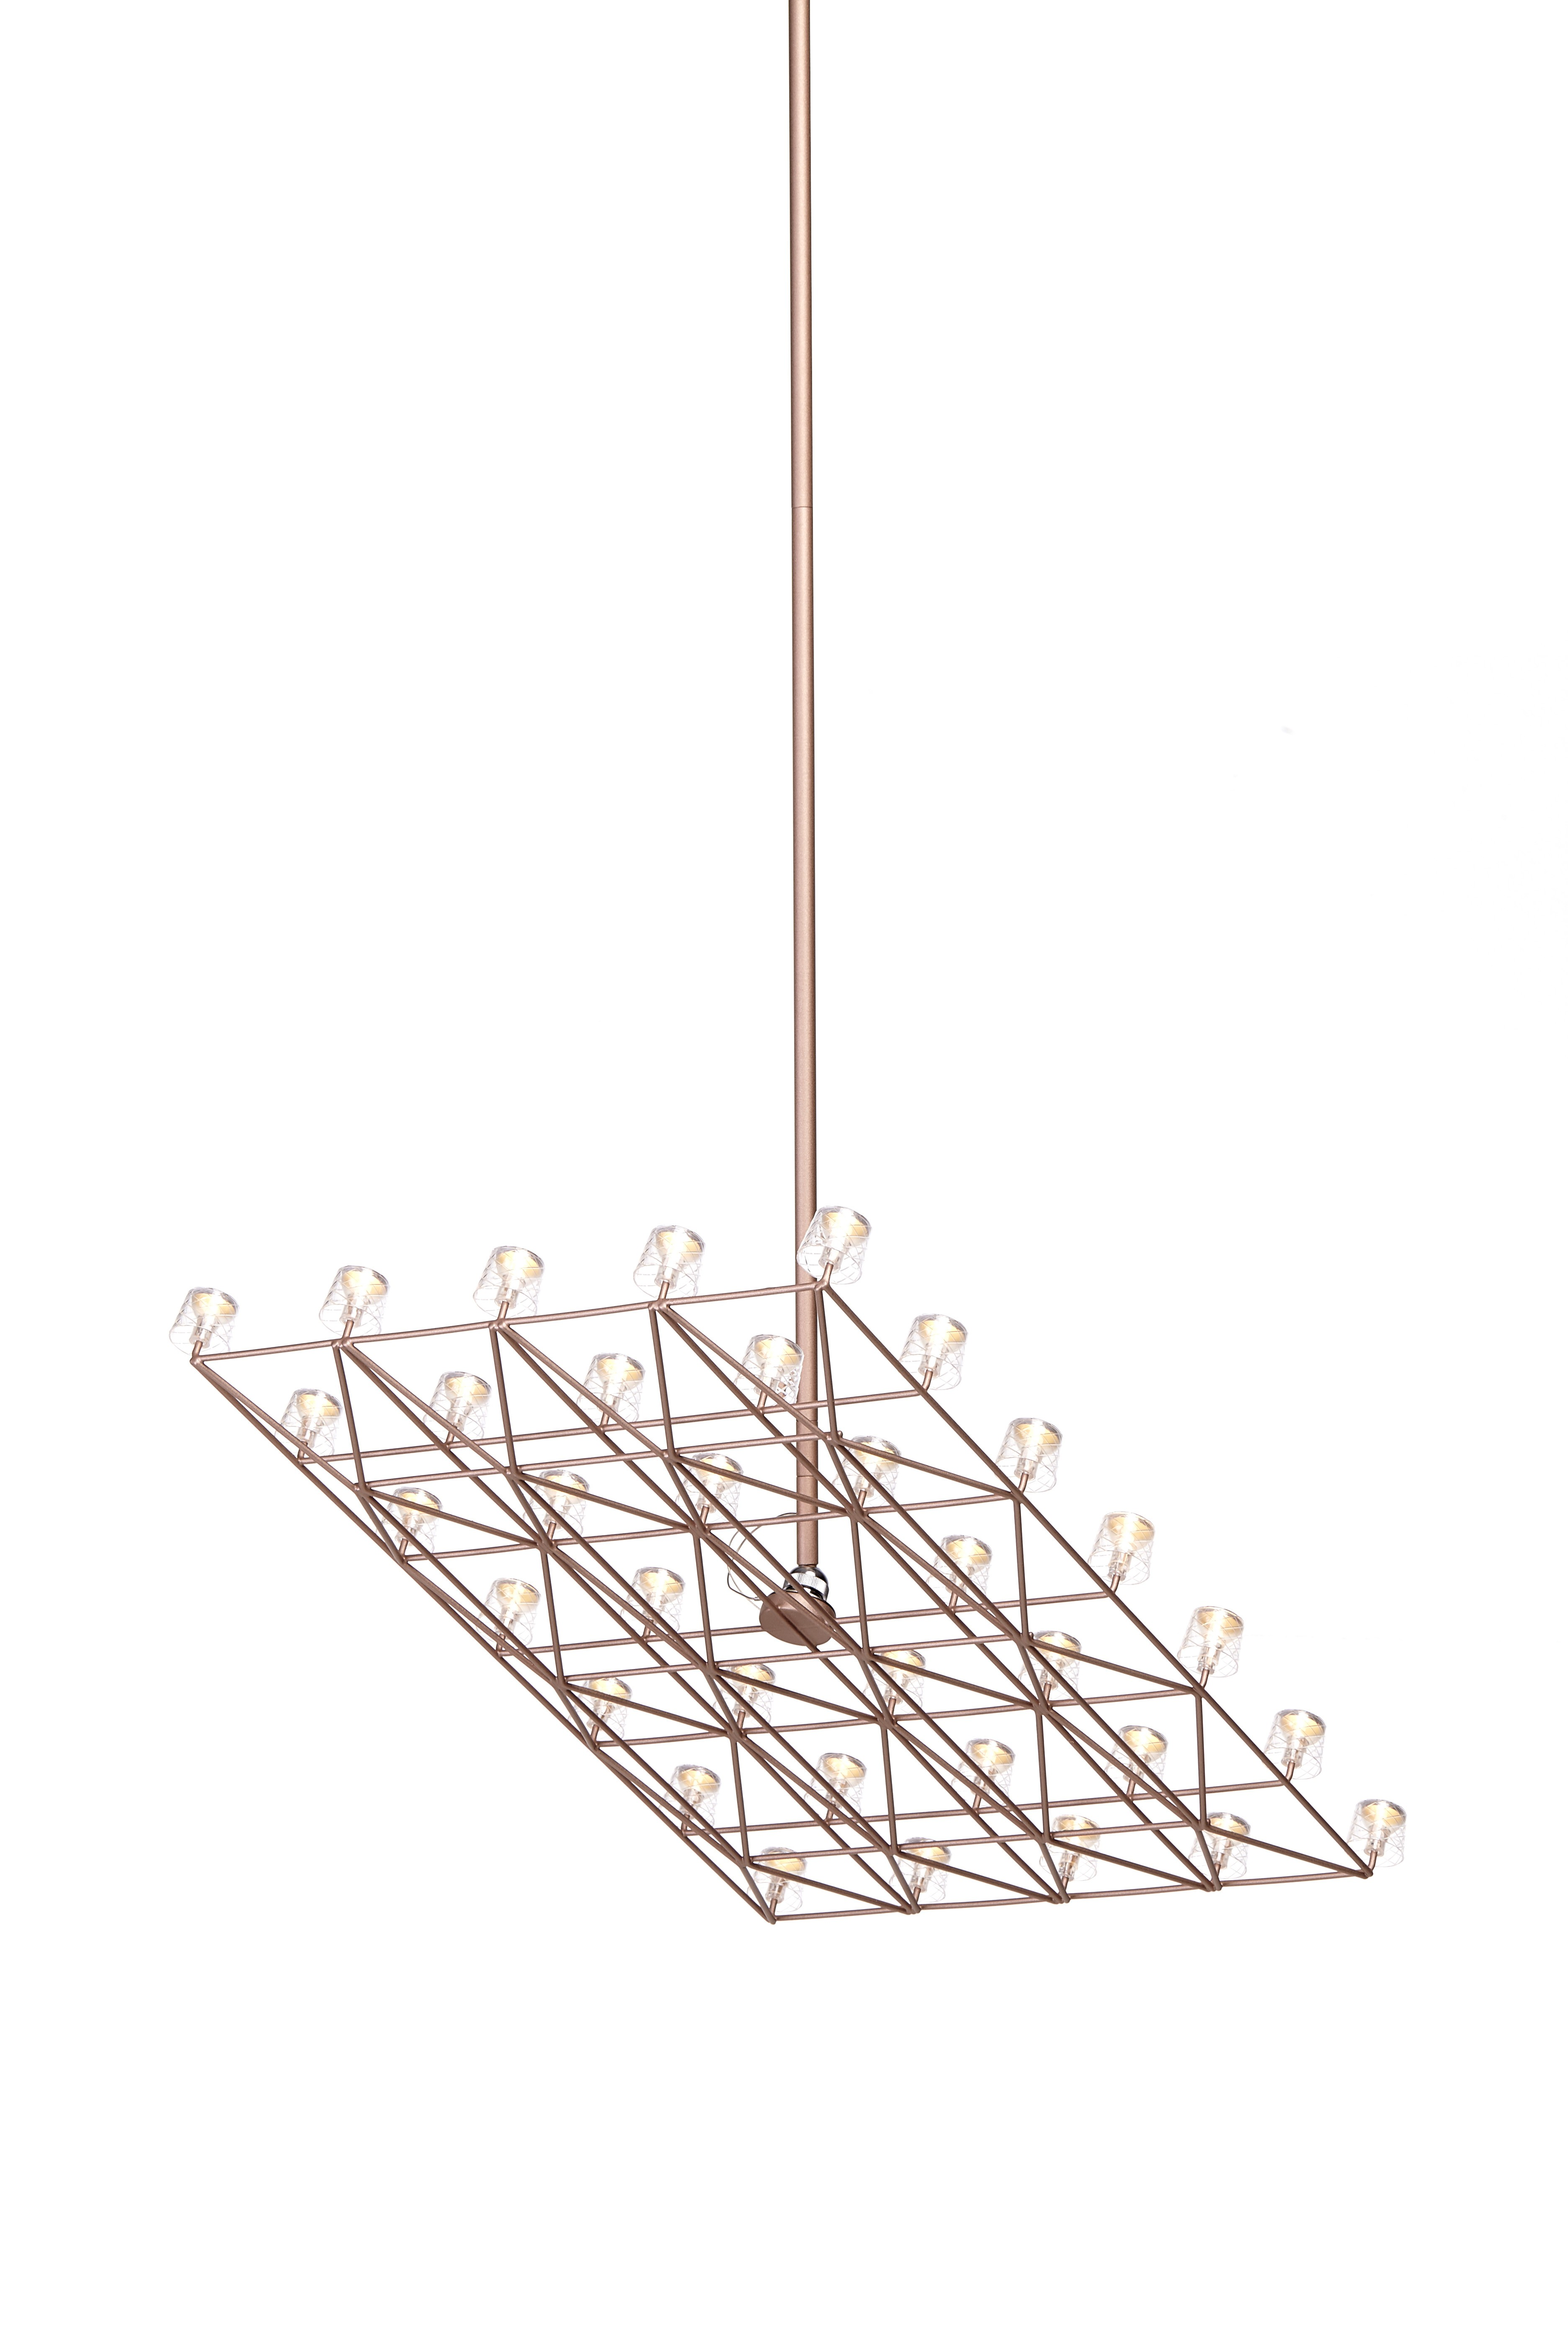 Moooi Space-Frame Suspension Lamp - GR Shop Canada